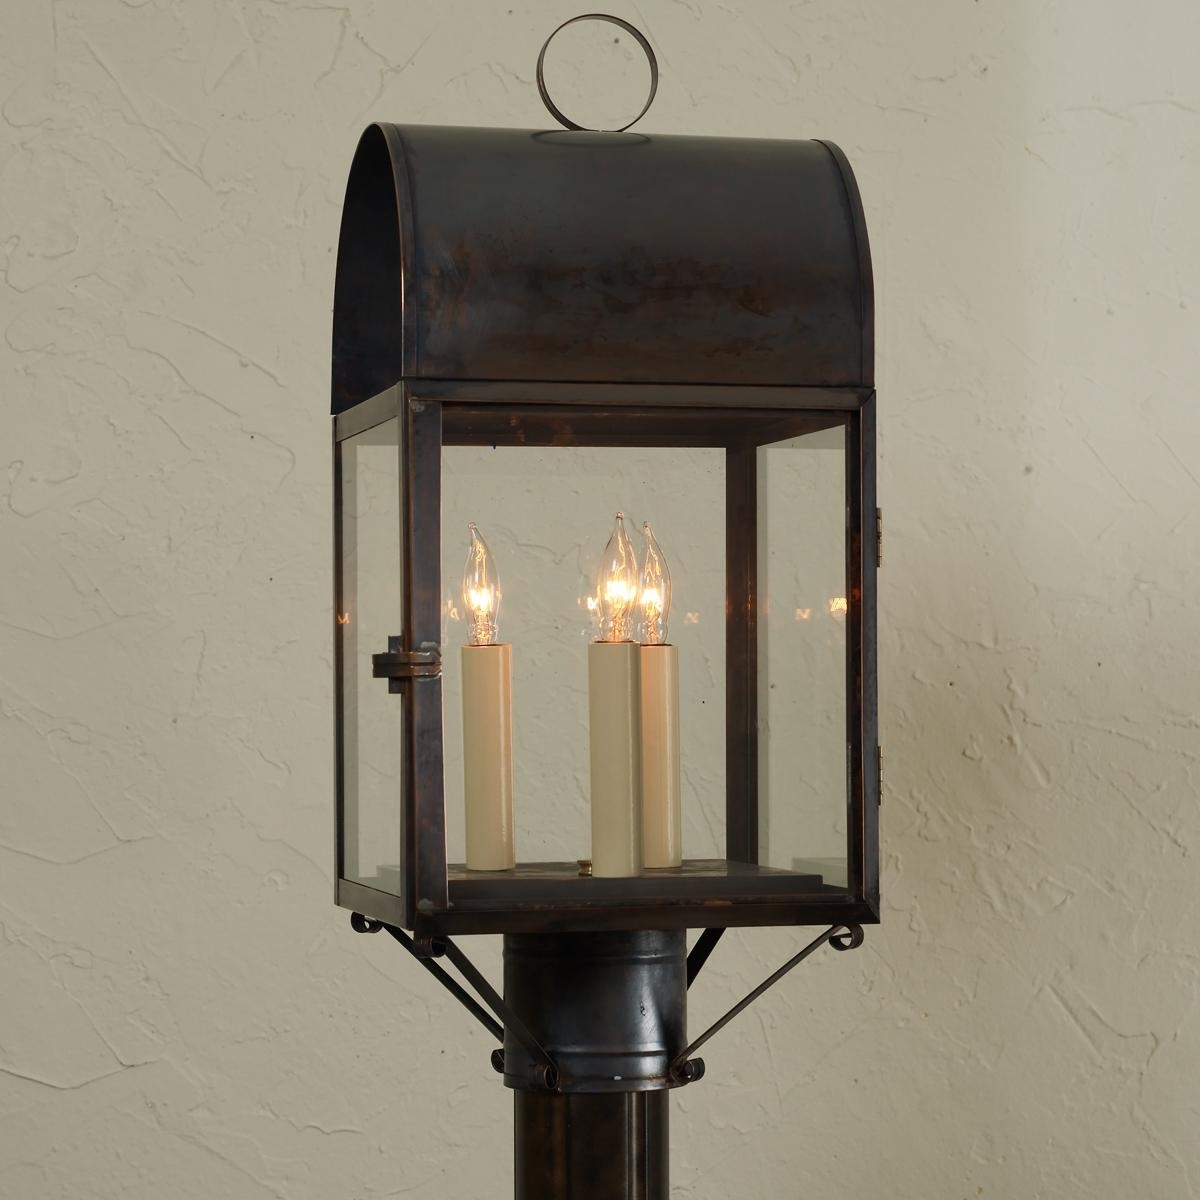 Latest Colonial Outdoor Lamp Posts All About House Design : Decorative Pertaining To Outdoor Lanterns For Posts (View 6 of 20)